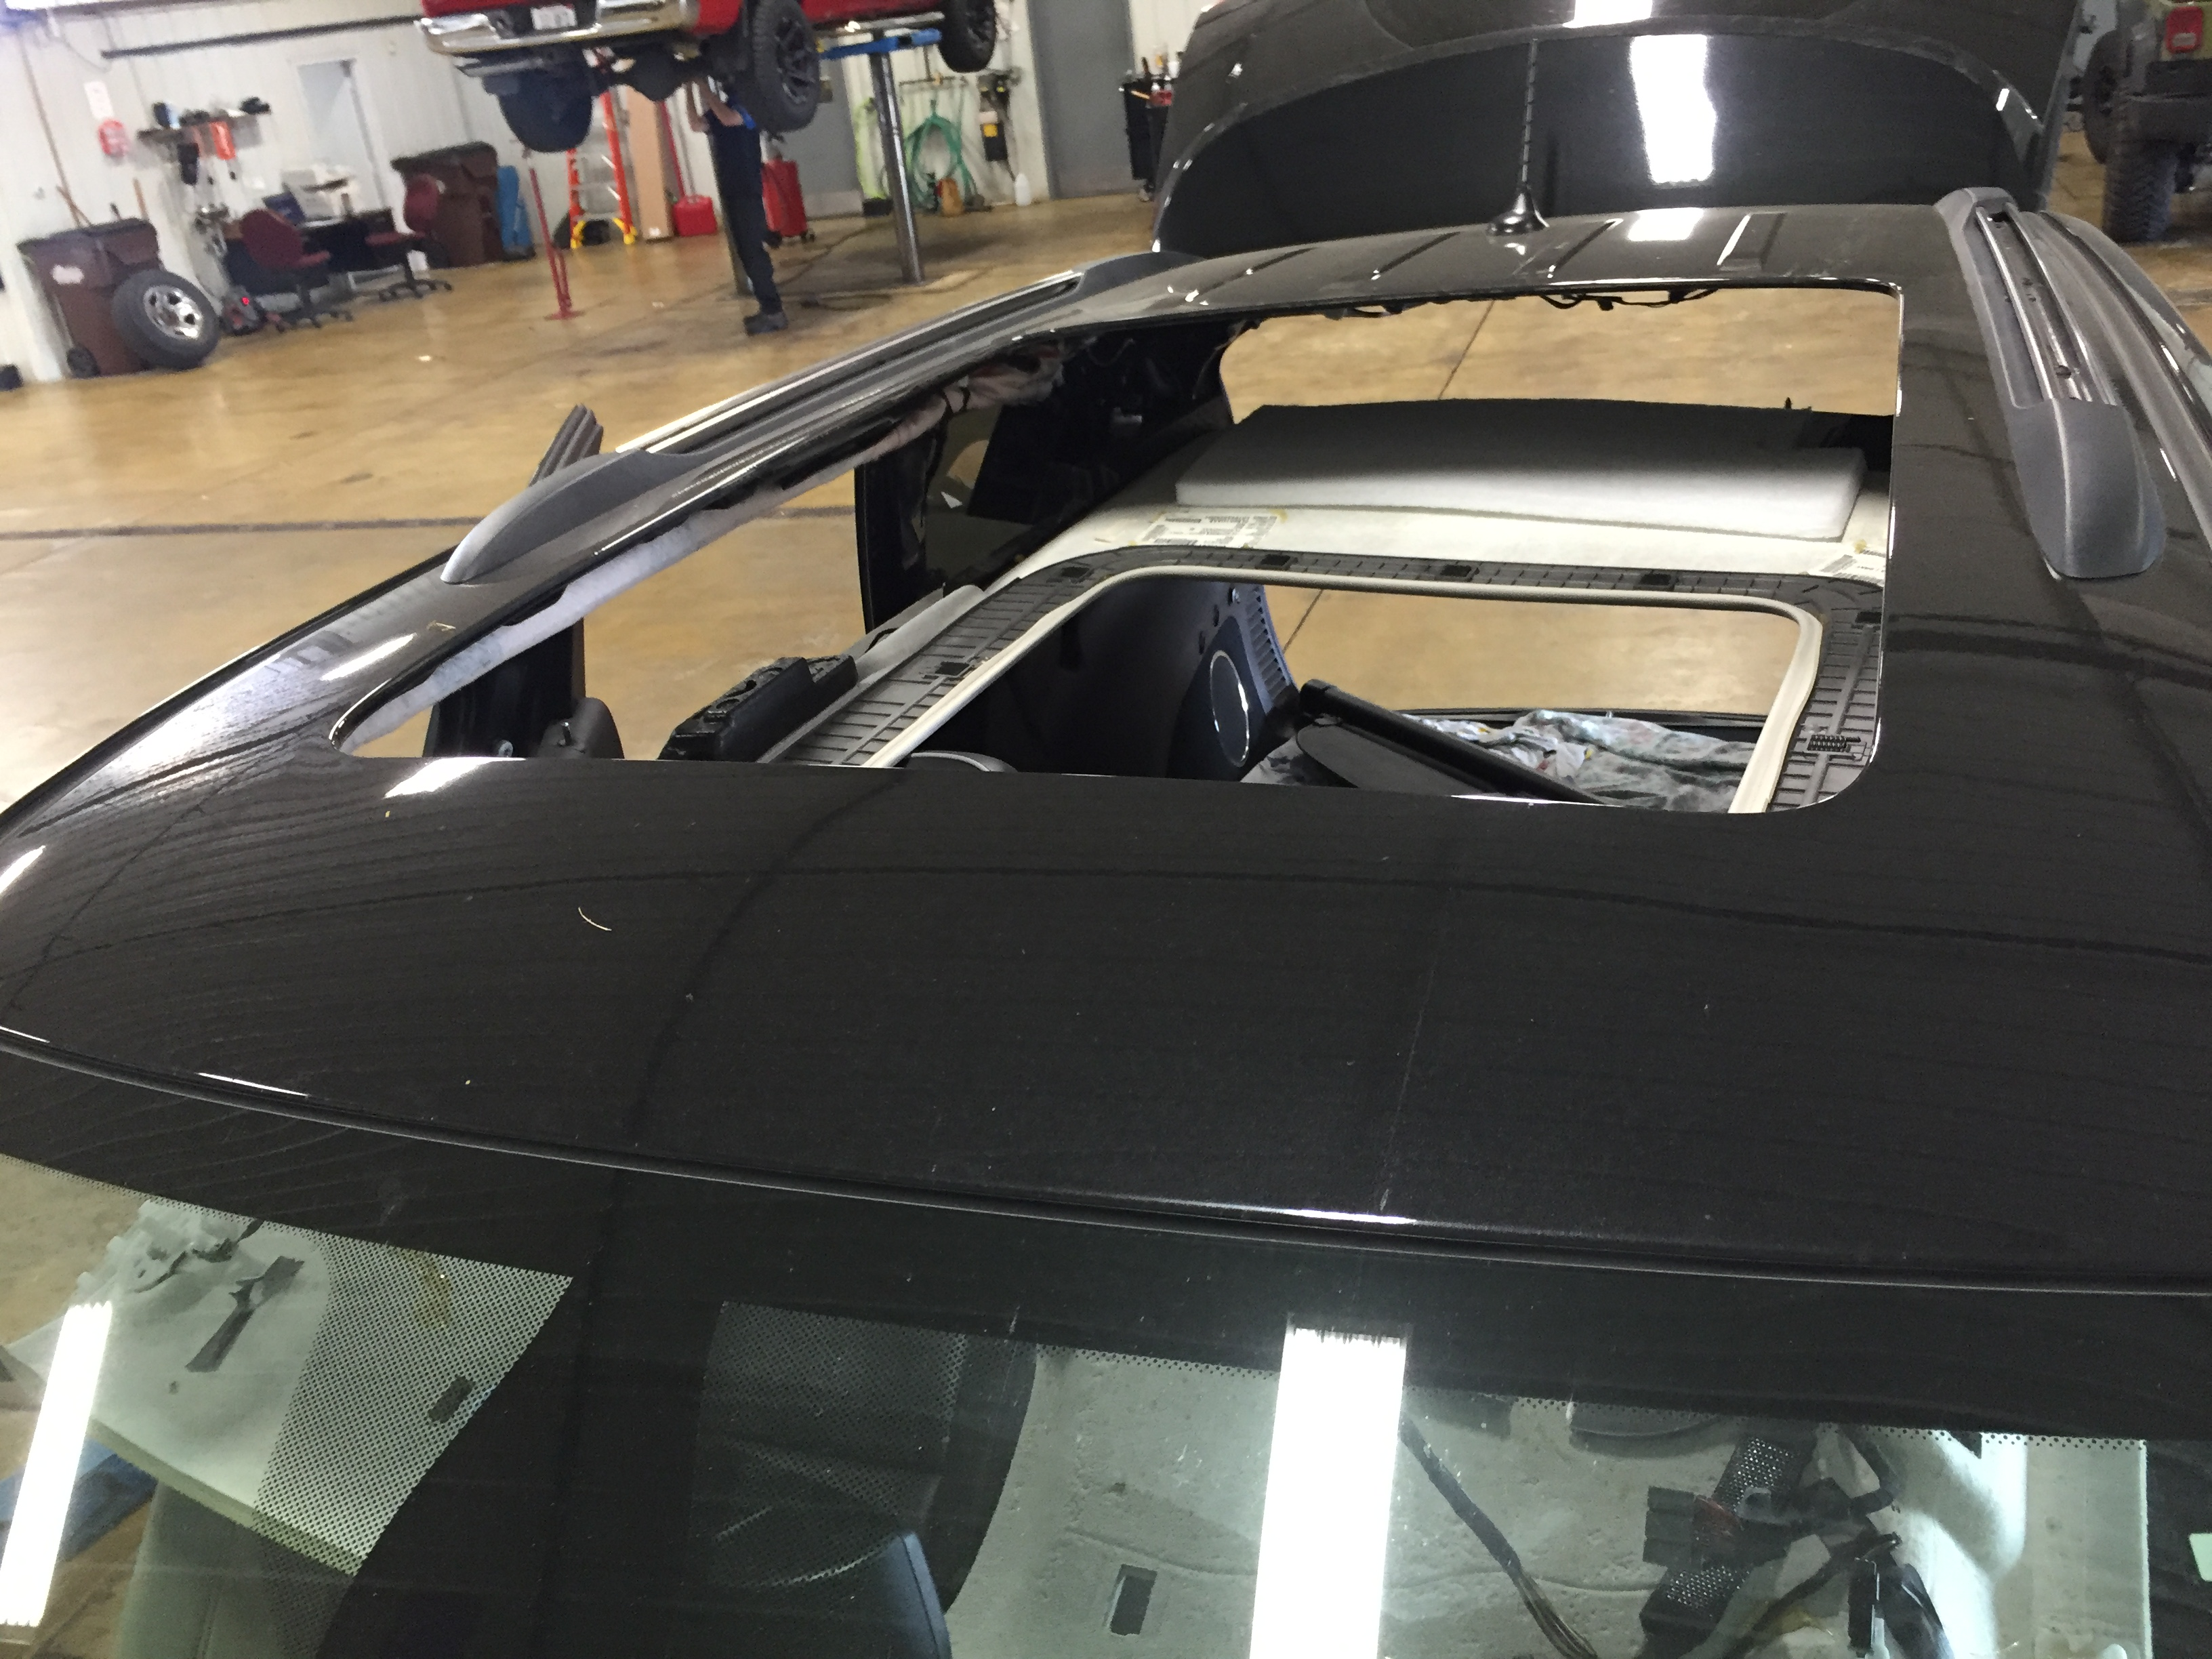 2013 grand cherokee dual pane sunroof removal springfield il mobile dent repair images paint. Black Bedroom Furniture Sets. Home Design Ideas